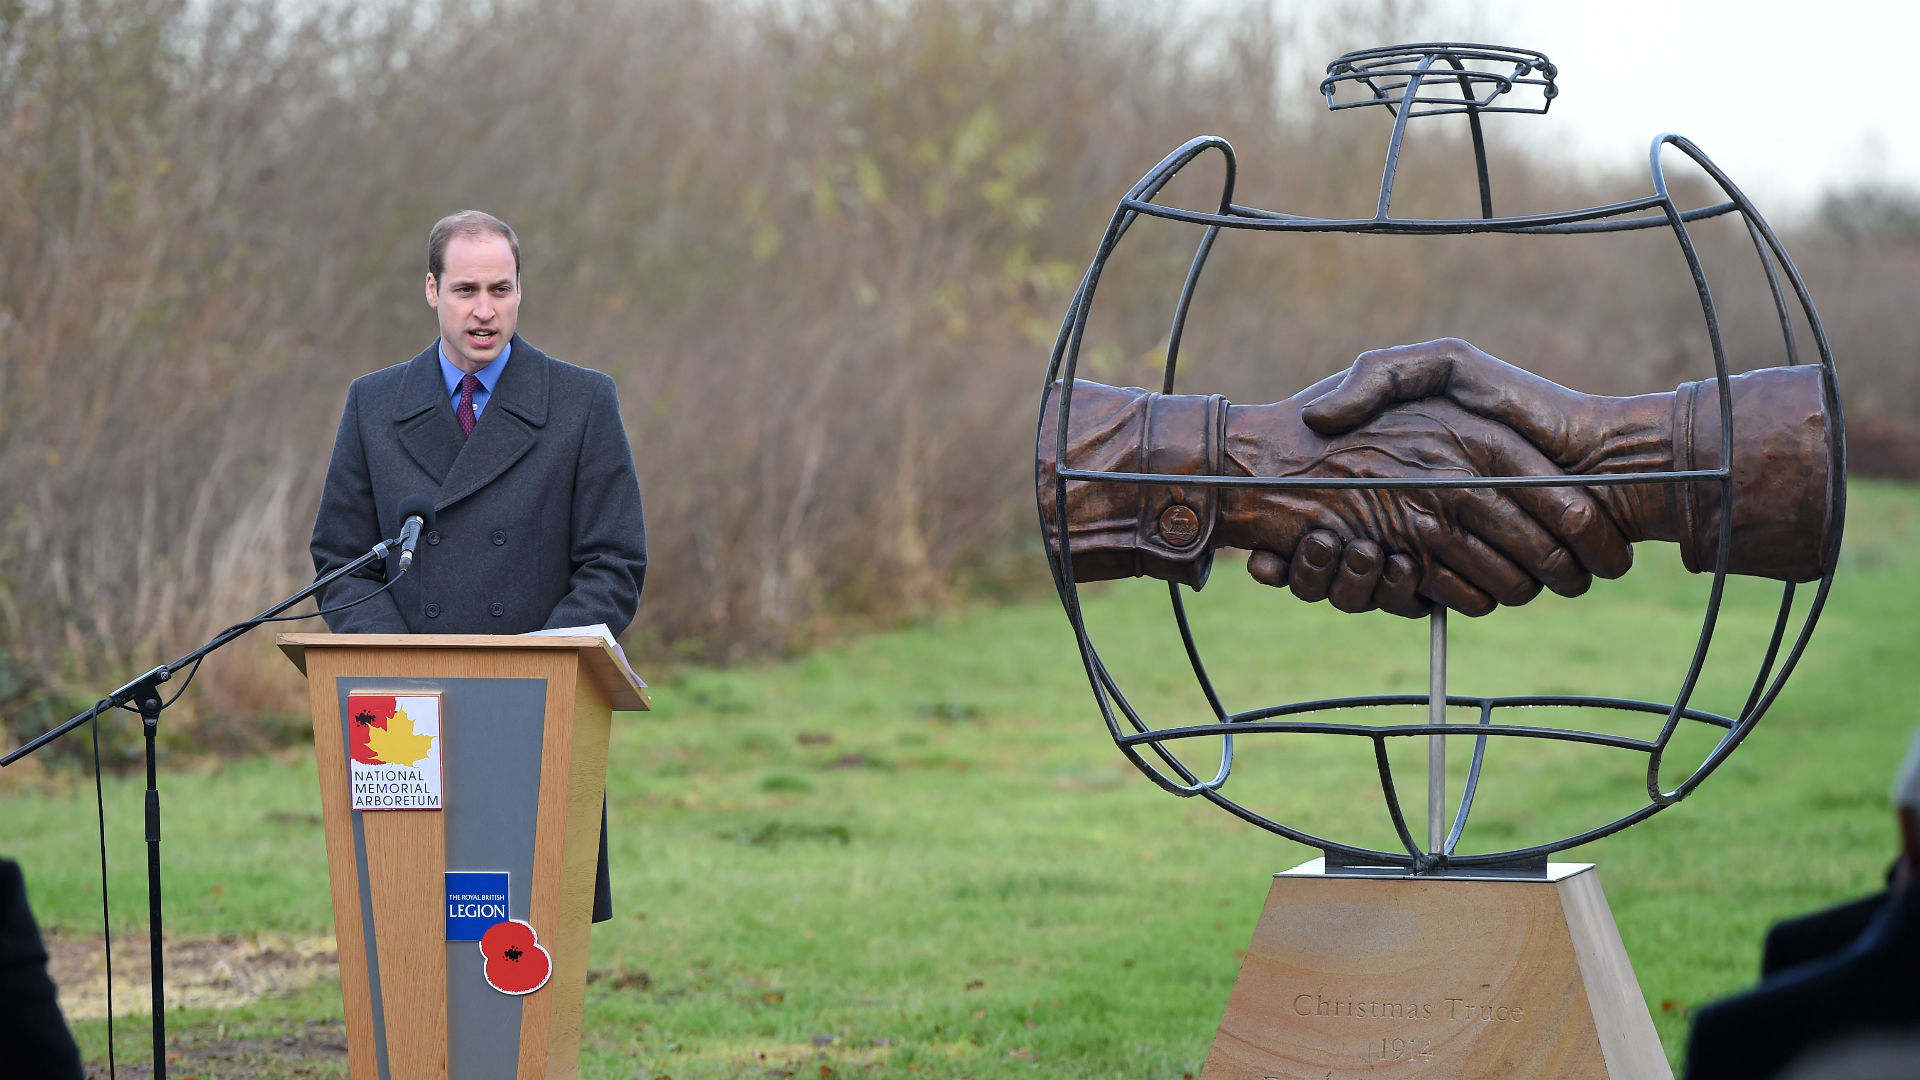 Christmas truce Prince William National Memorial Arboretum 2014